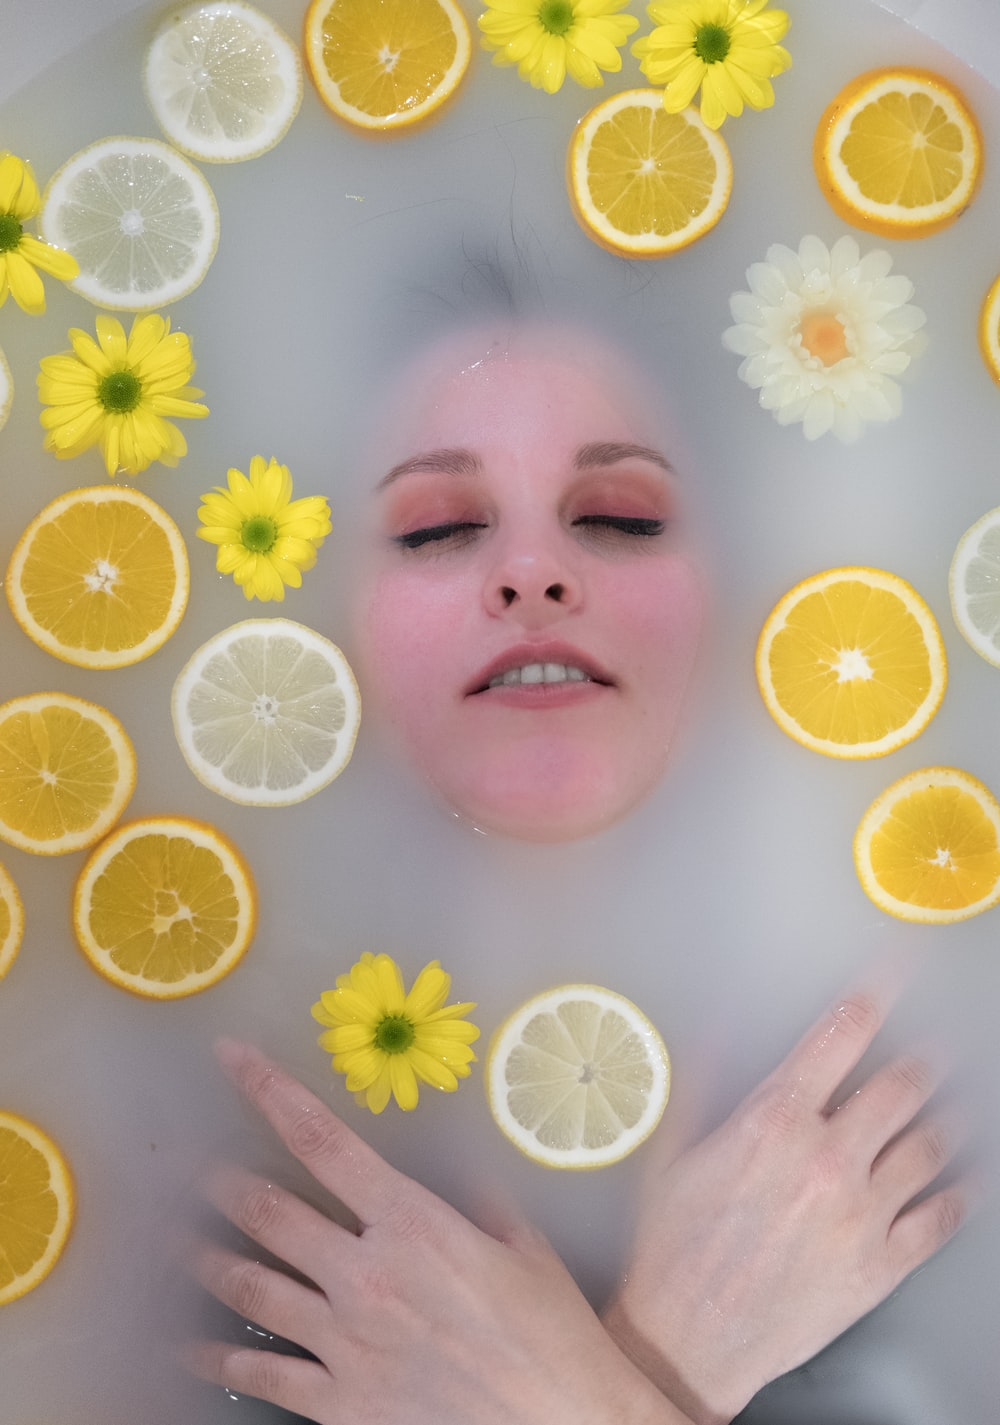 flat-lay photography of woman dipped in water surrounded by yellow lemons and flowers